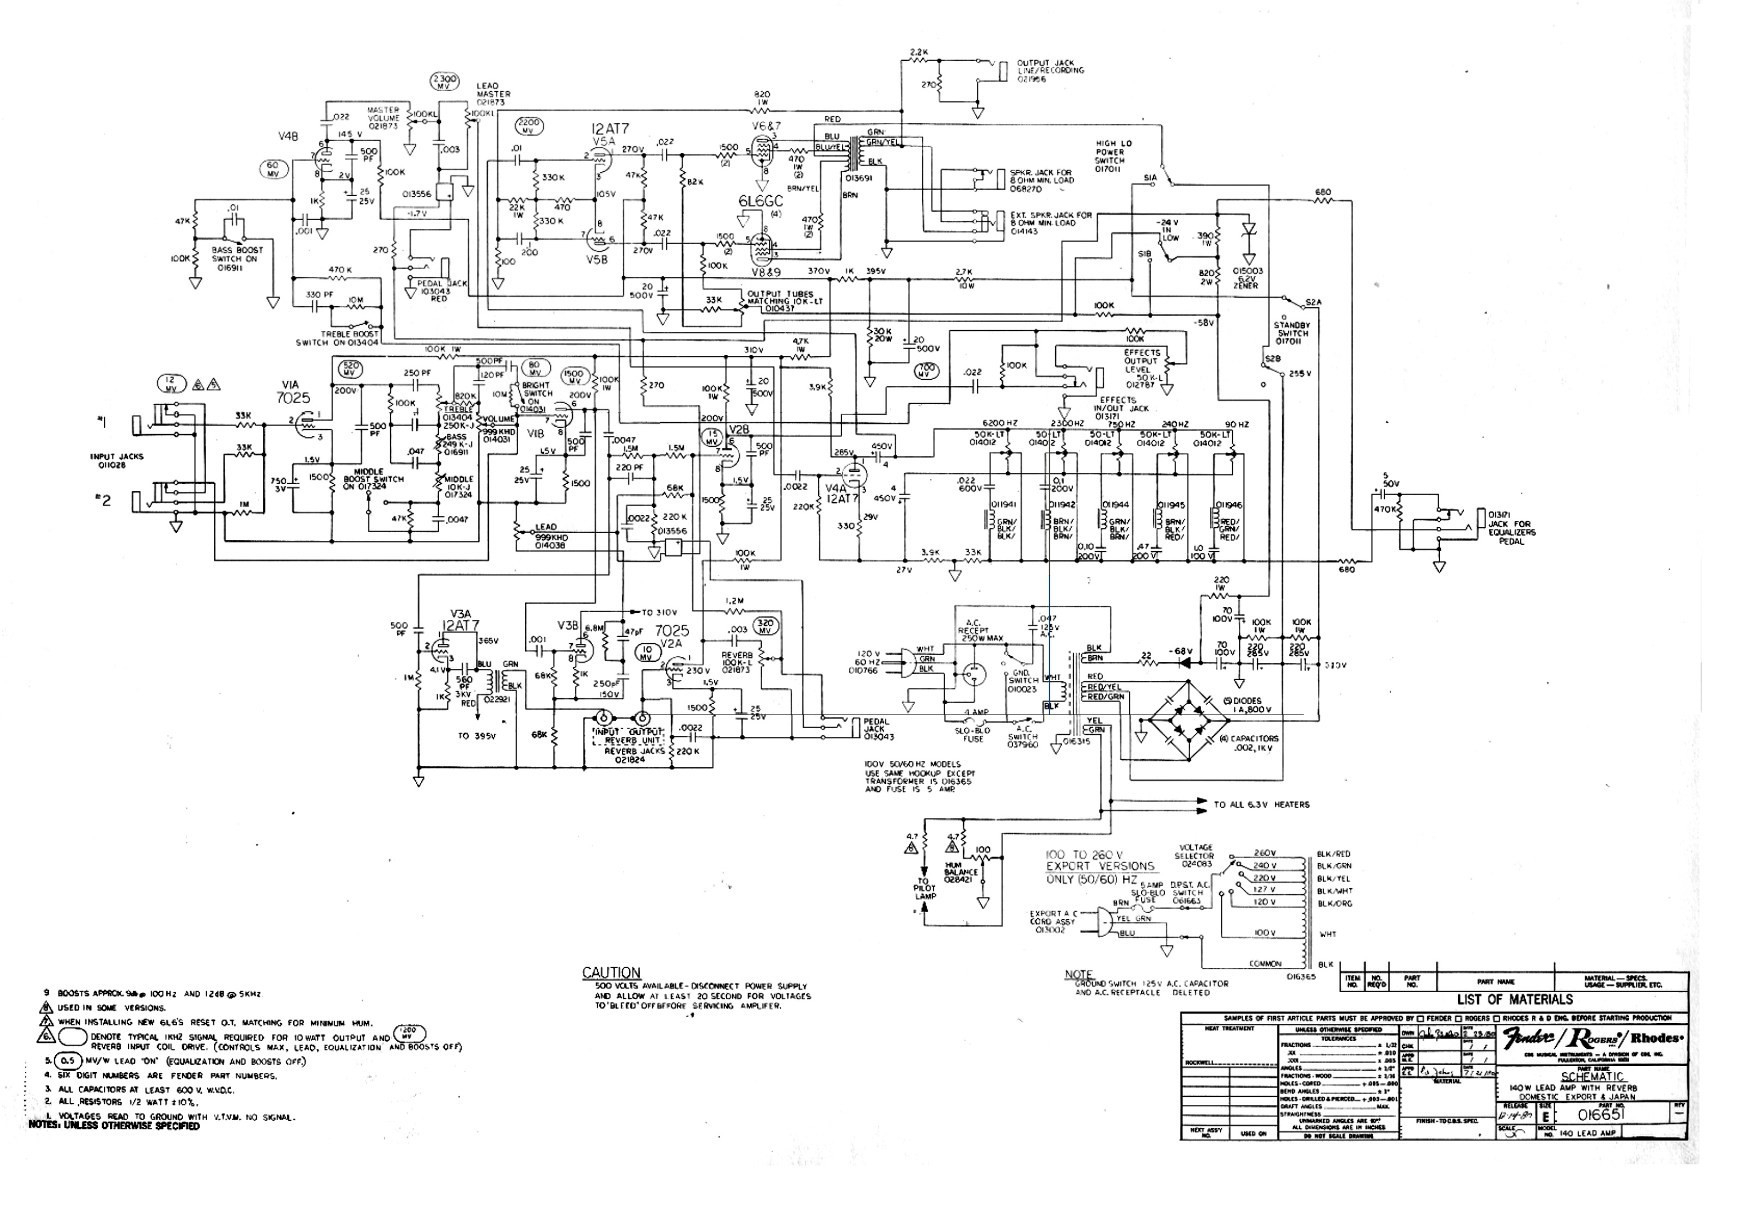 federal signal pa300 wiring diagram gallery